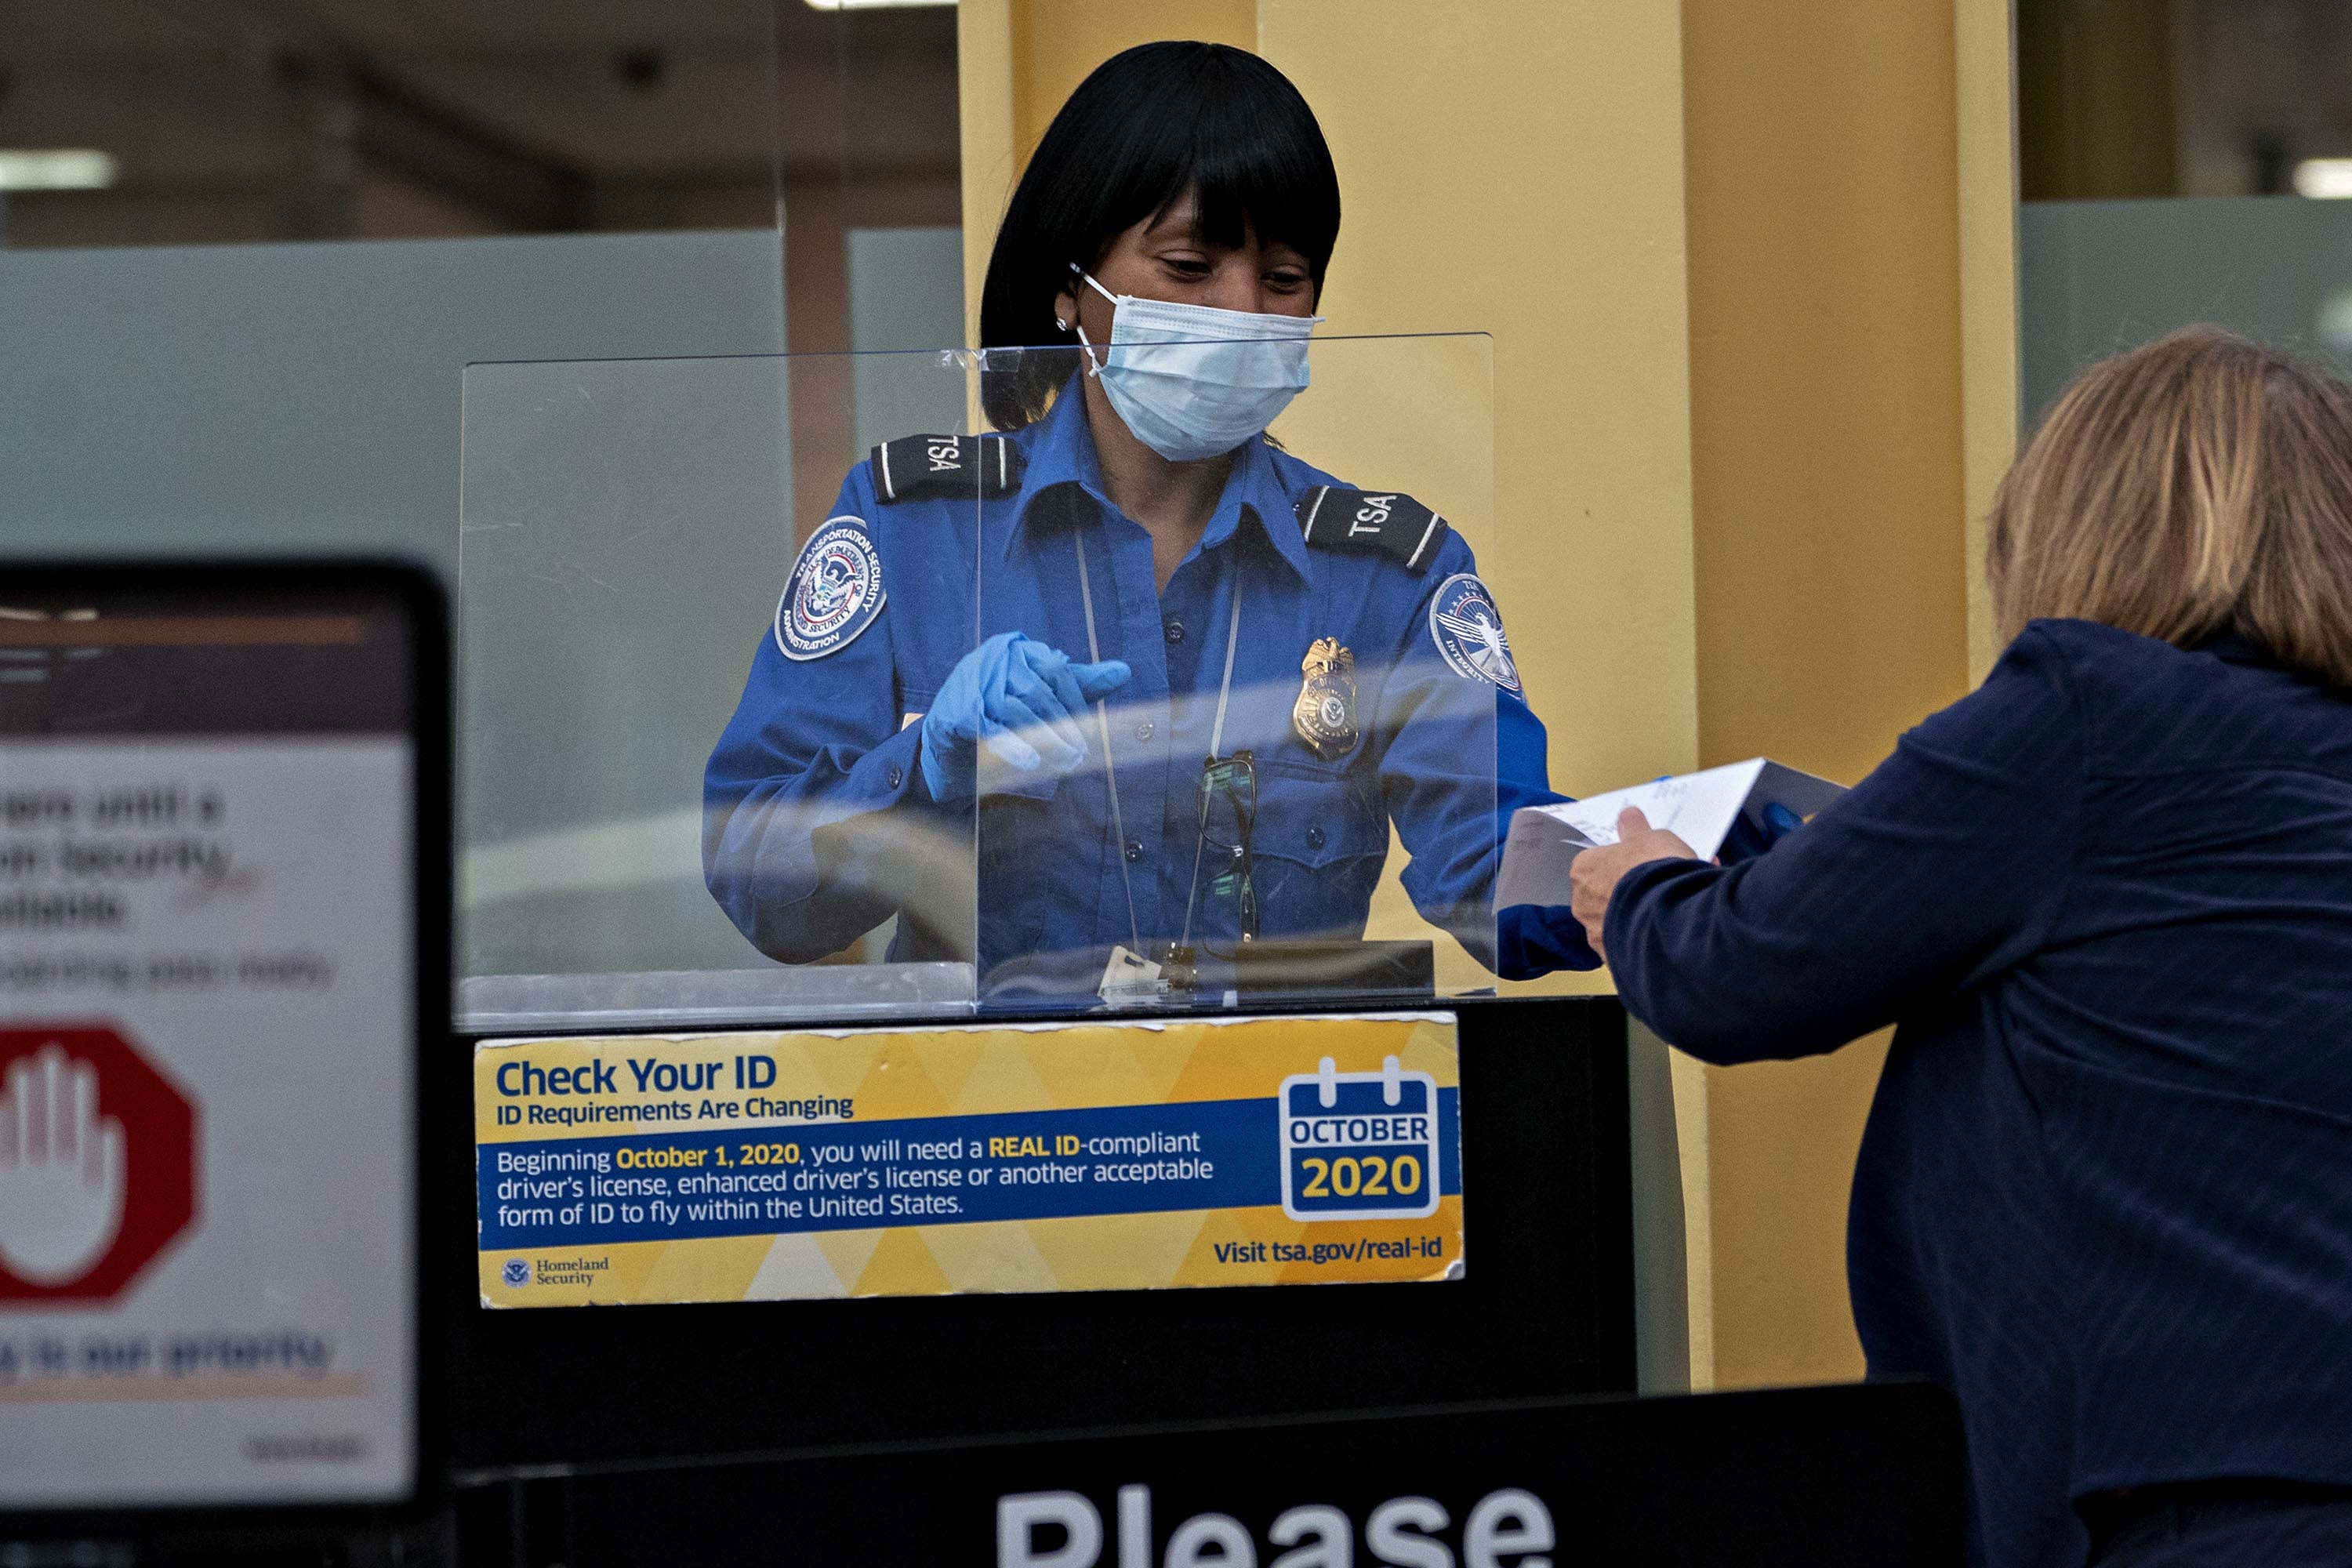 A TSA agent stands behind a protective barrier while screening a traveler at Ronald Reagan National Airport in Arlington, Virginia in June 2020.